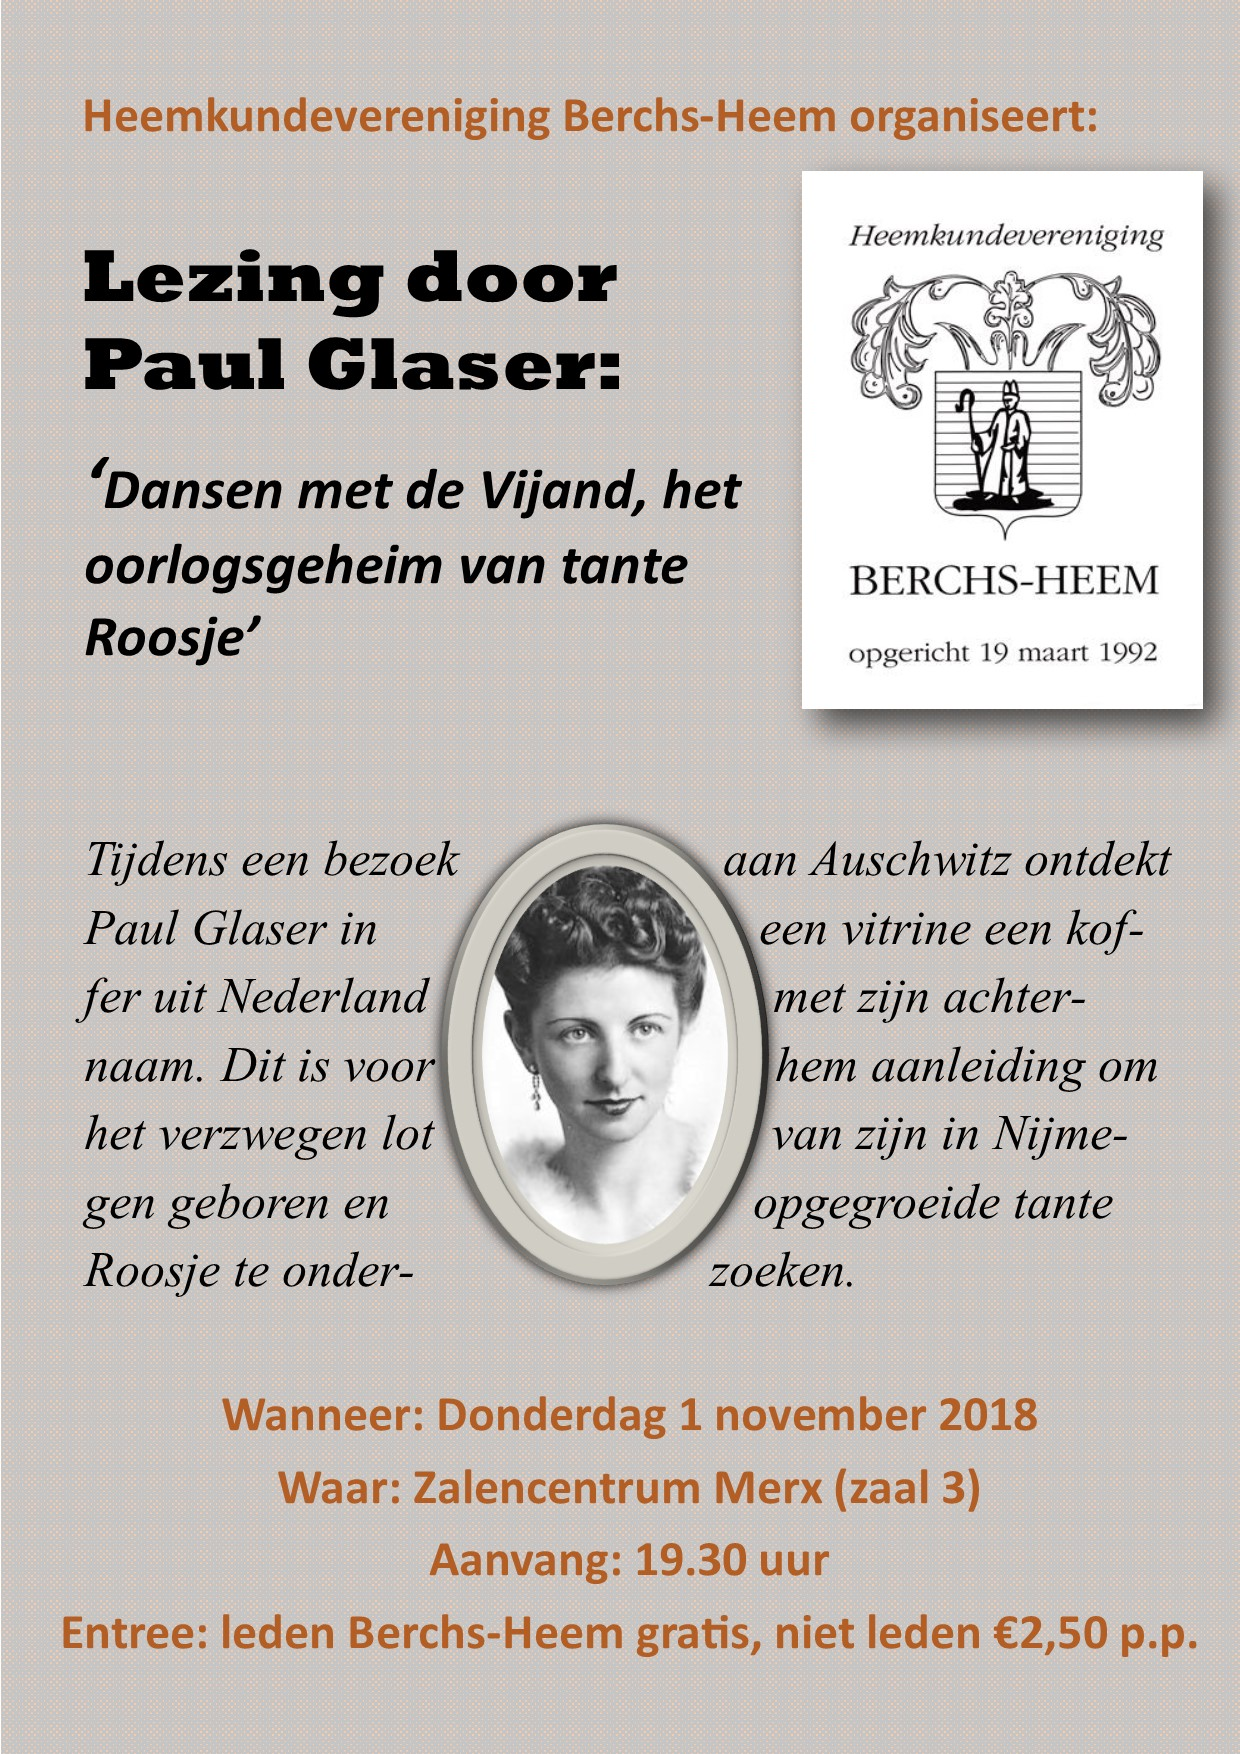 Lezing Paul Glaser